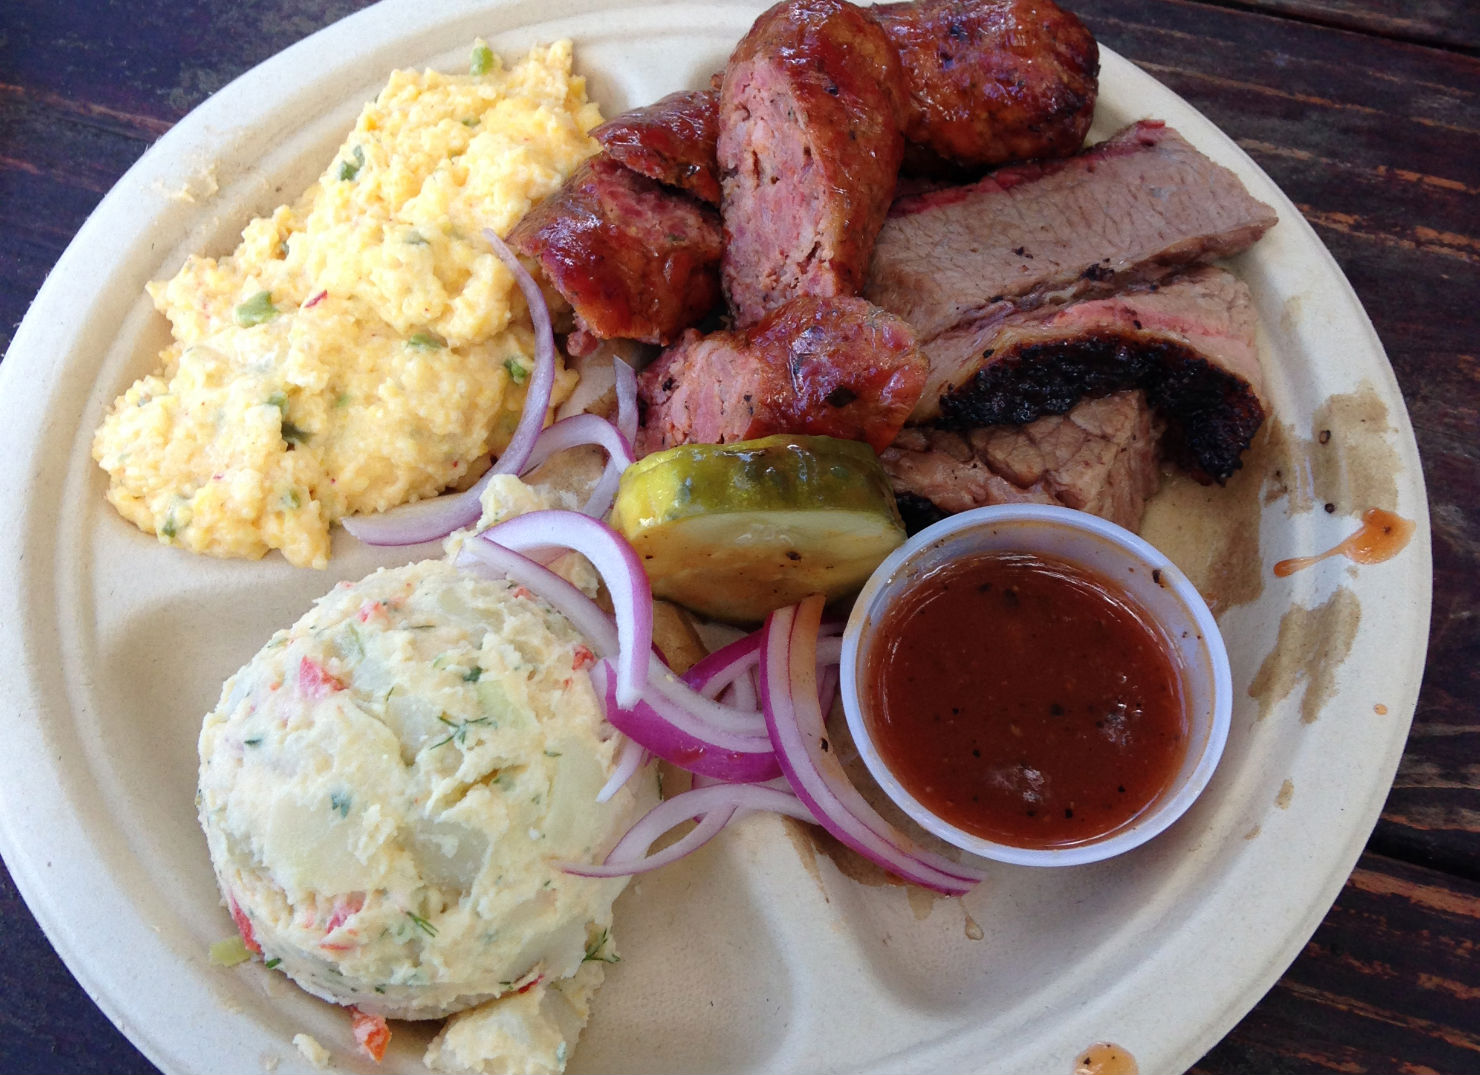 Brisket, kielbasa, jalapeno cheese grits & potato salad from Micklethwait Craft Meats